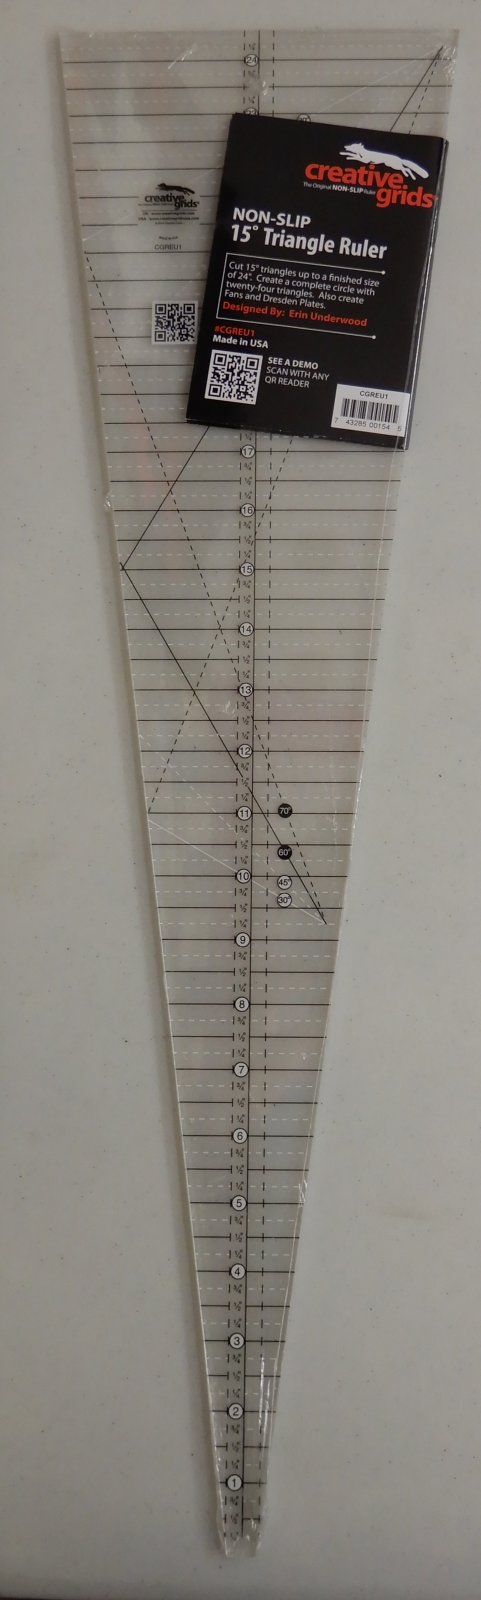 Creative Grids 15 degree Ruler